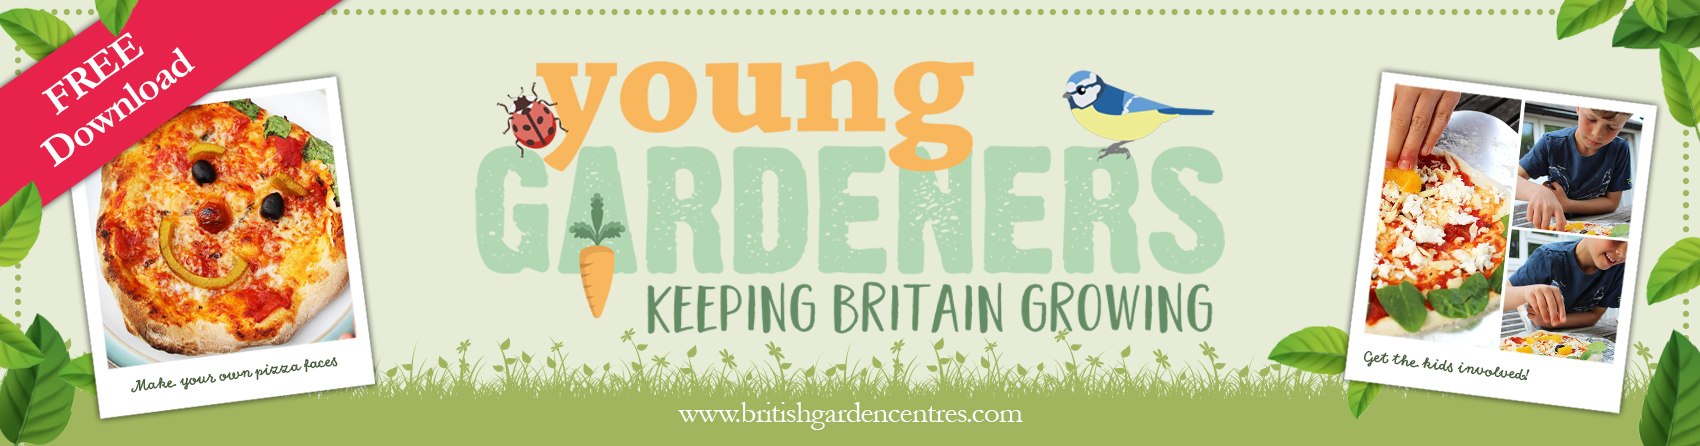 Young Gardeners - Pizza Faces